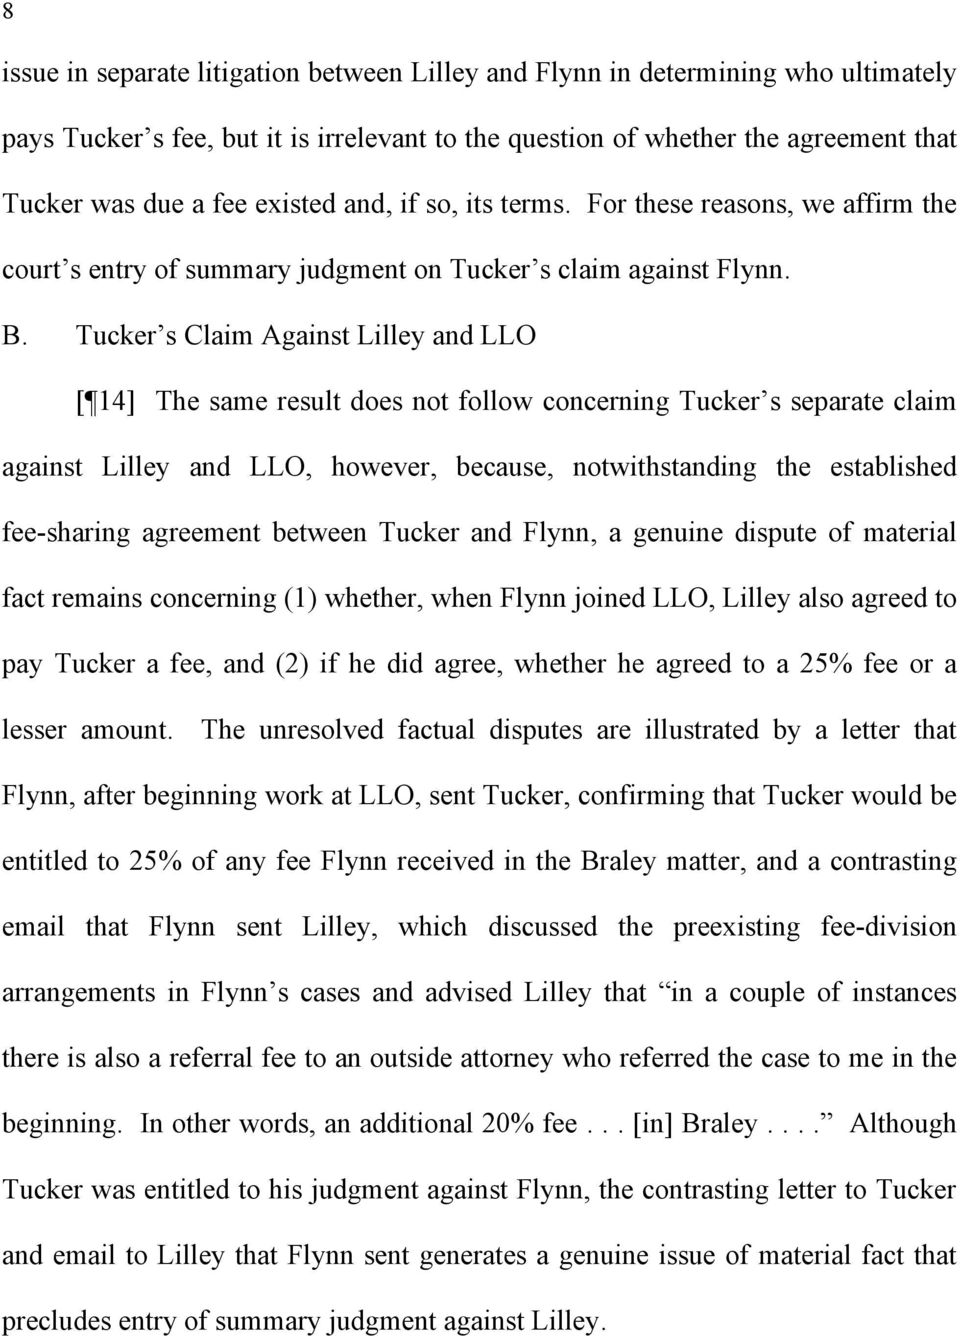 Tucker s Claim Against Lilley and LLO [ 14] The same result does not follow concerning Tucker s separate claim against Lilley and LLO, however, because, notwithstanding the established fee-sharing